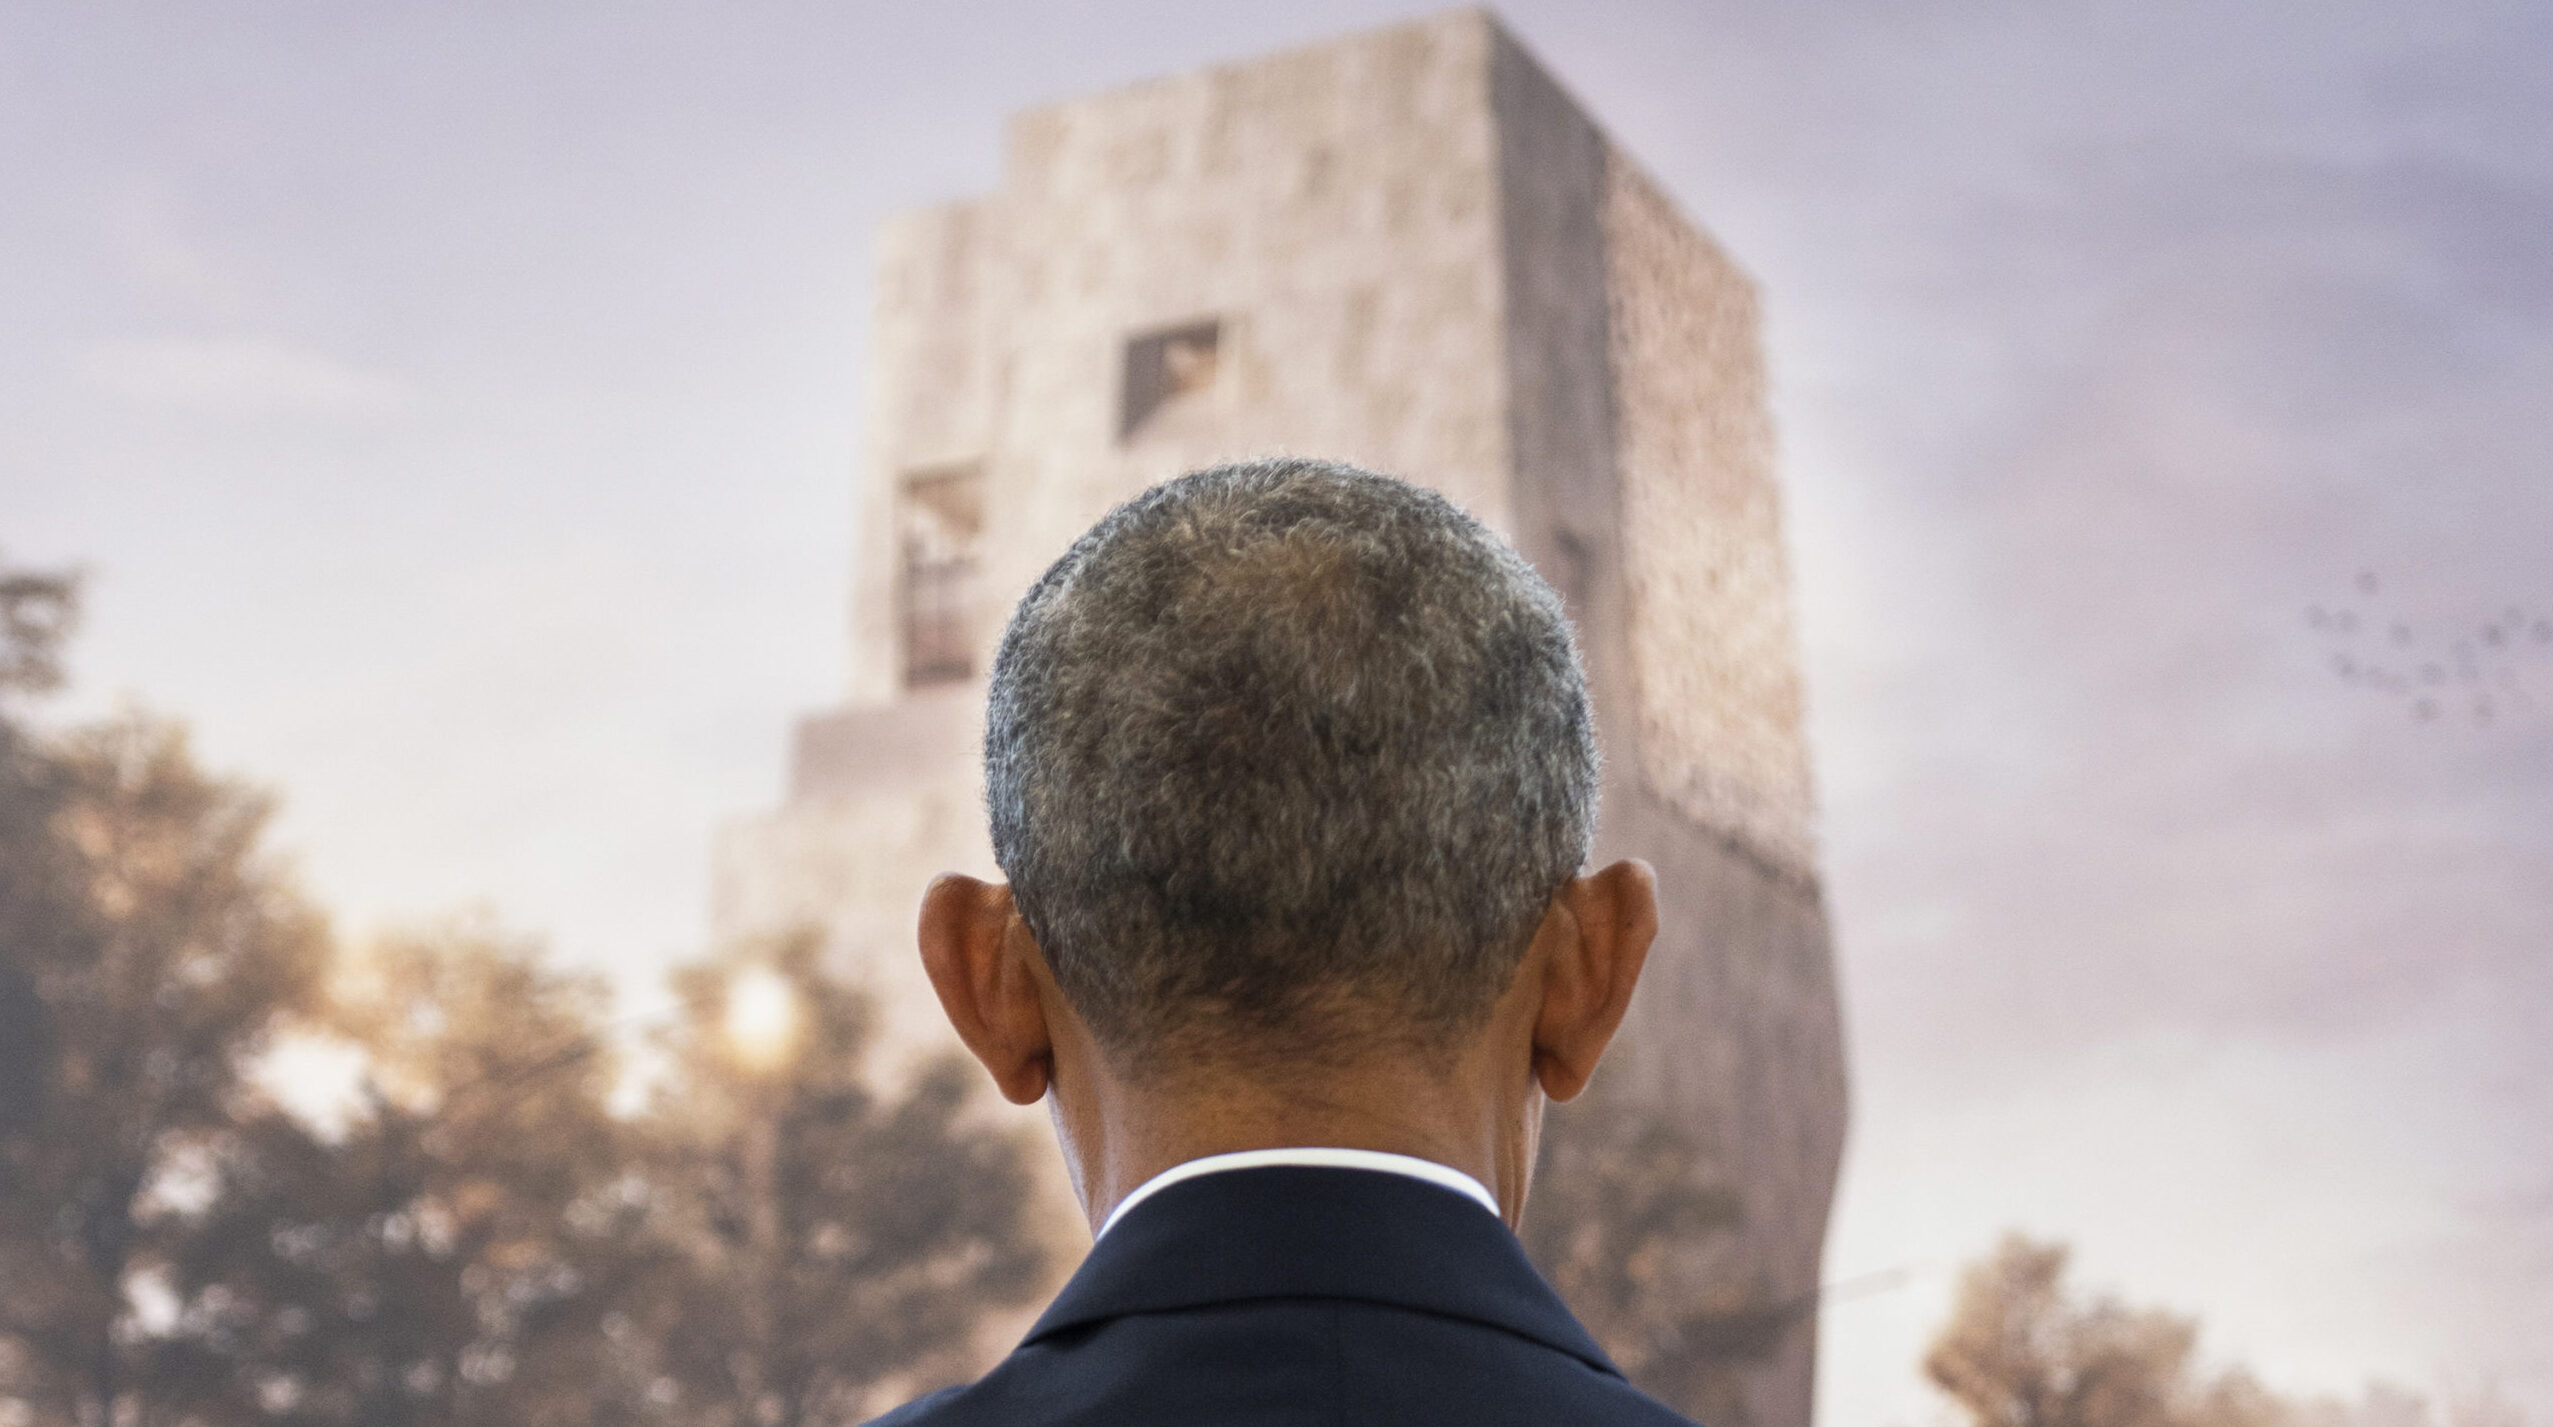 President Obama is photographed from behind looking at a rendering of the Obama Presidential Center.